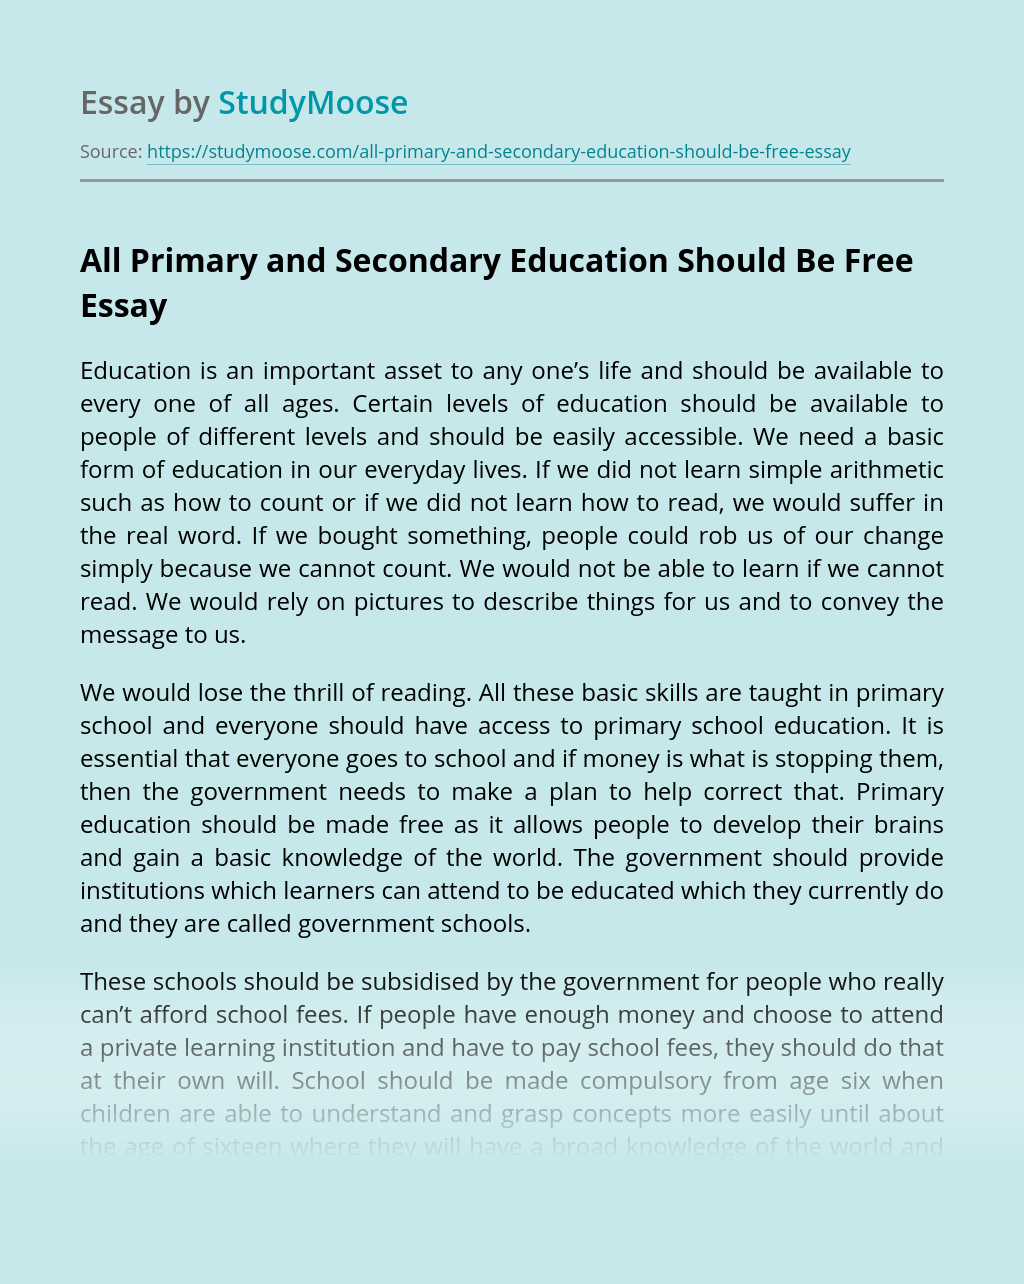 All Primary and Secondary Education Should Be Free